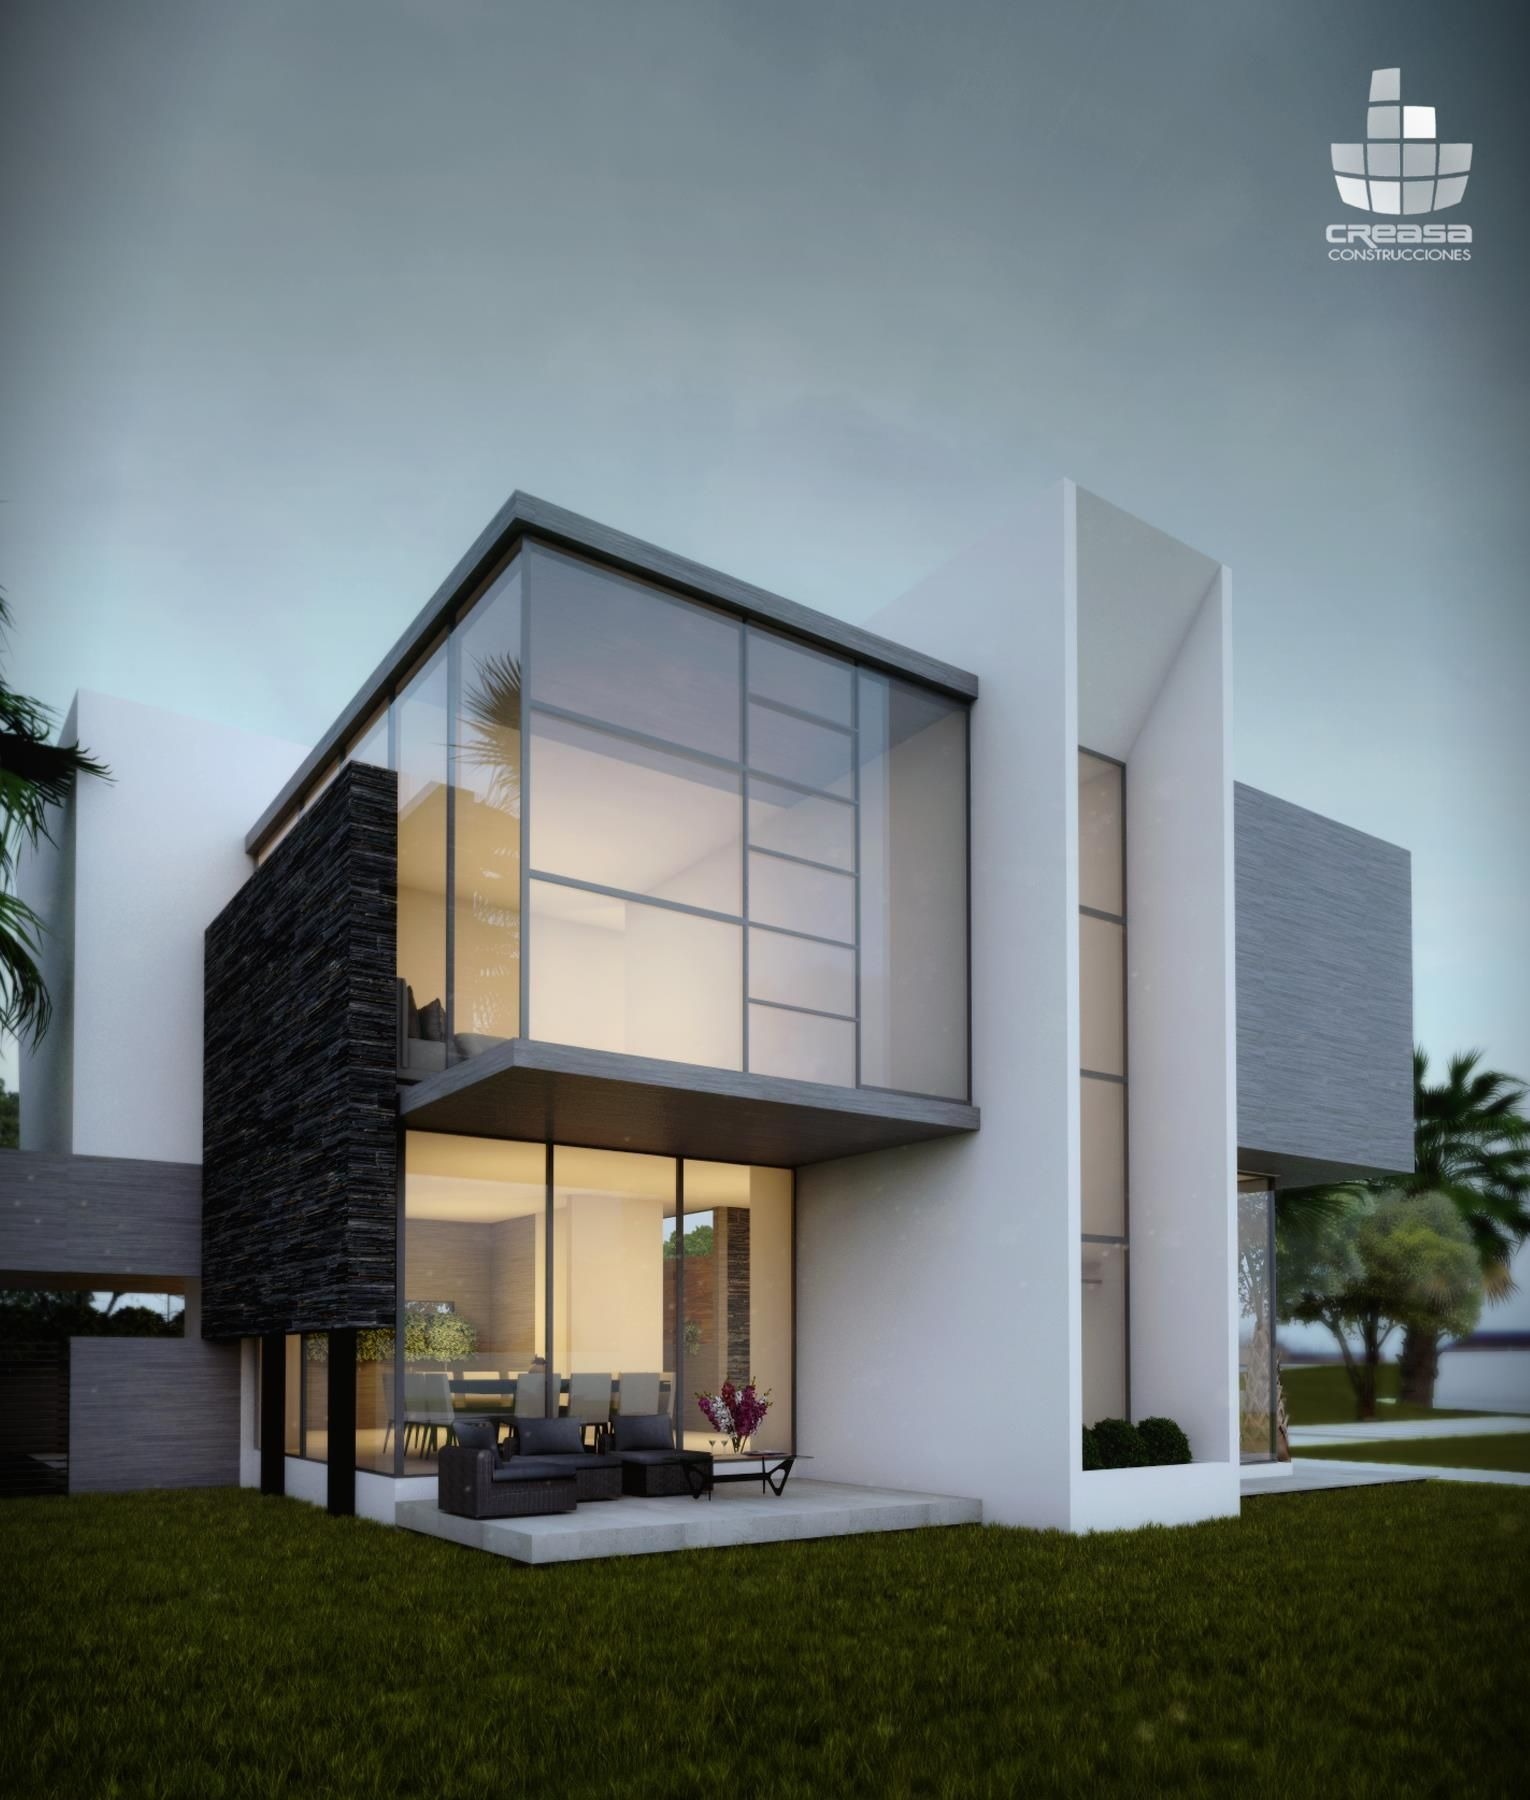 Creasa modern architecture pinterest villas house for Simple small modern house